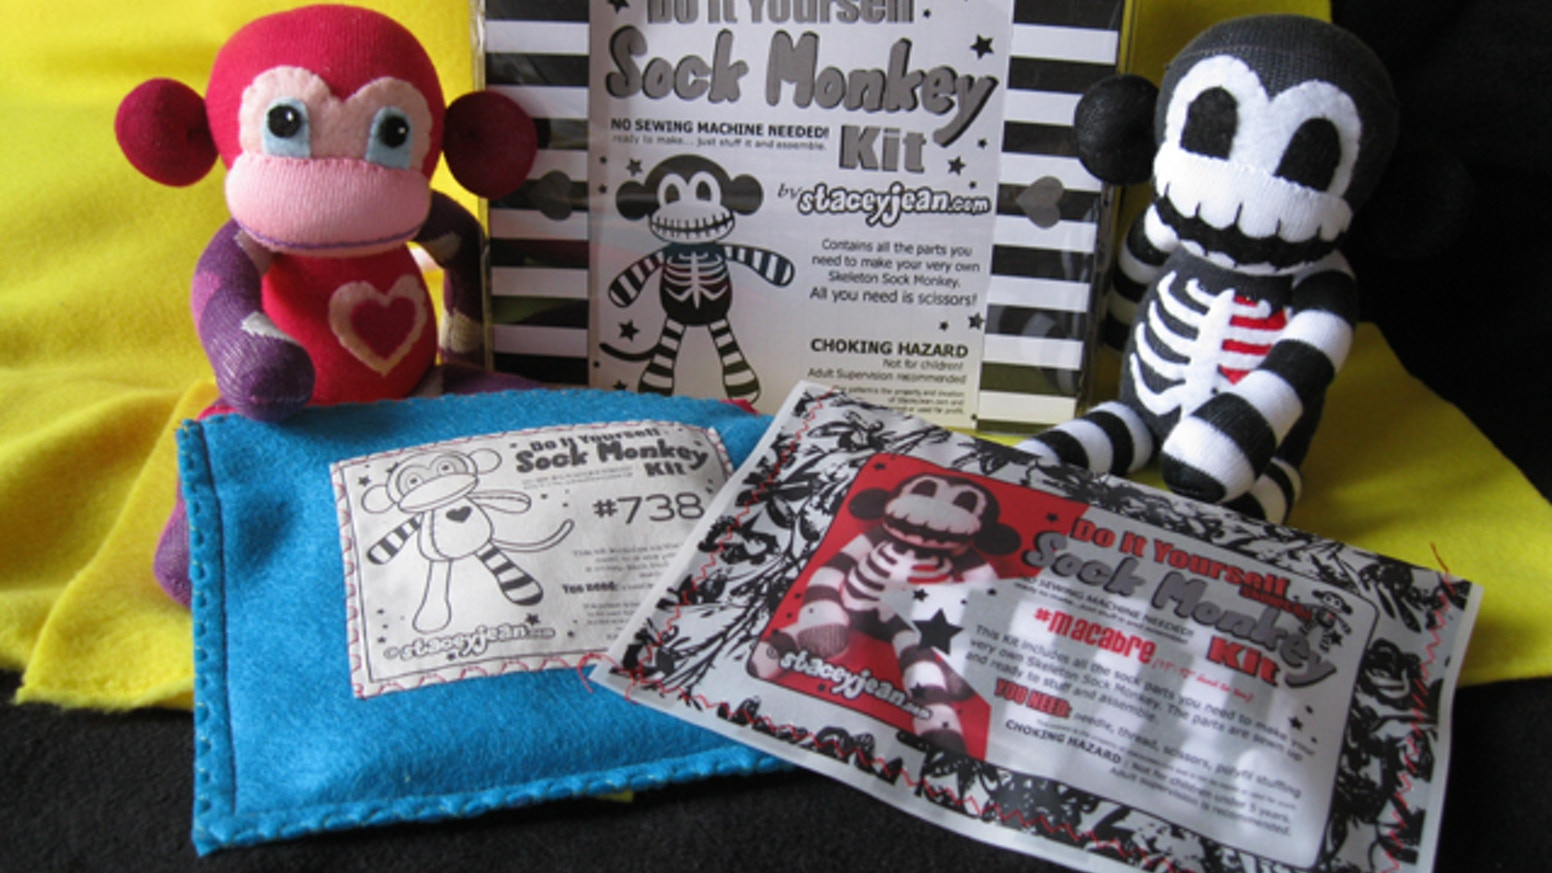 Do it yourself sock monkey kits by stacey jean kickstarter do it yourself sock monkey kits solutioingenieria Gallery